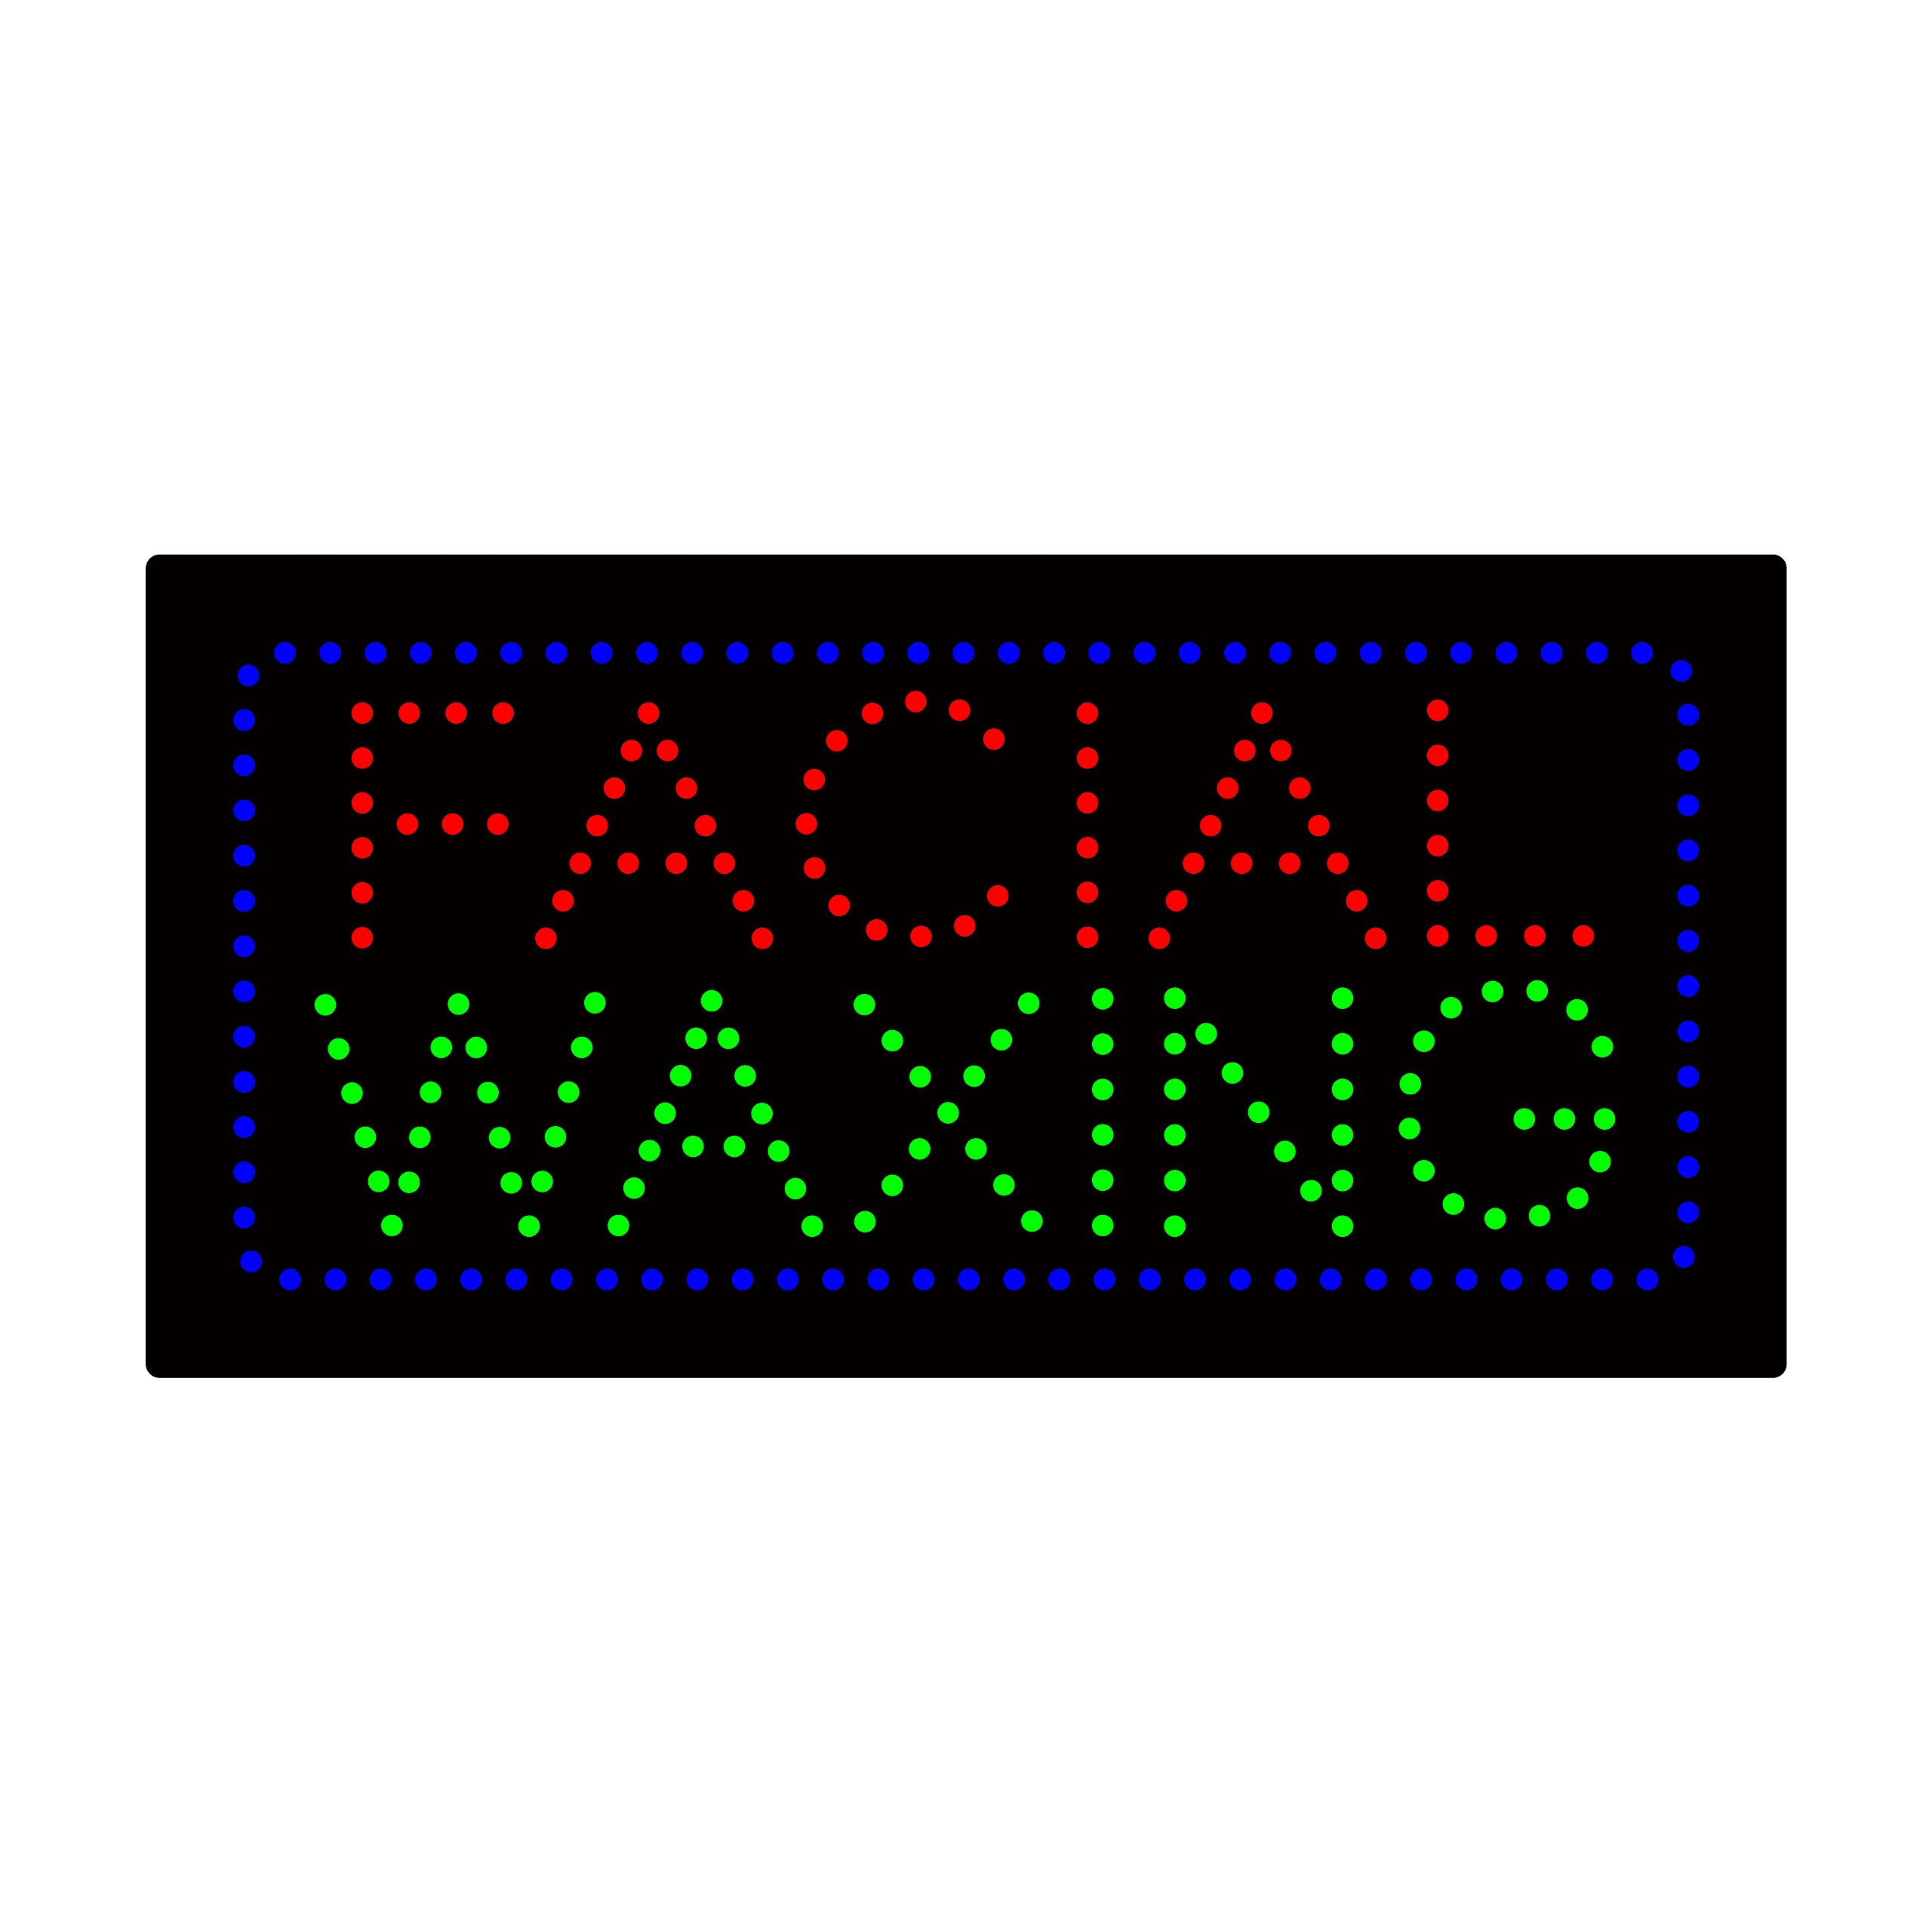 LED Facial Waxing Light Sign Super Bright Electric Advertising Display Board for Nails Spa Pedicure Message Business Shop Store Window Bedroom 24 x 12 inches by HIDLY (Image #1)